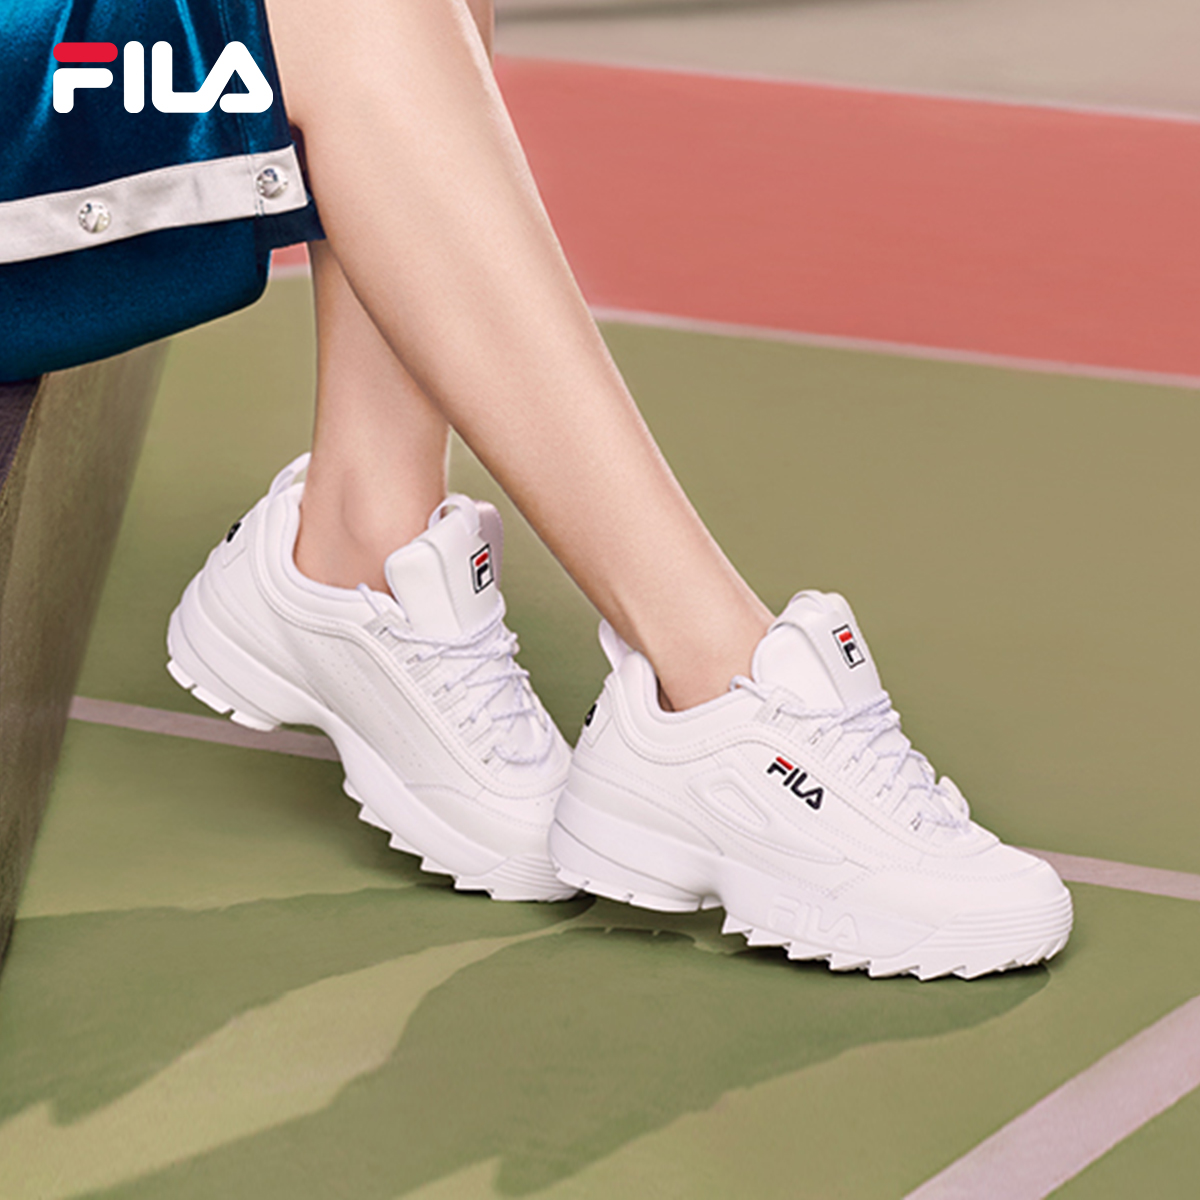 03edff3ebb7 FILA Fila high round with the same women s shoes spring new retro running  shoes fashion leather ...